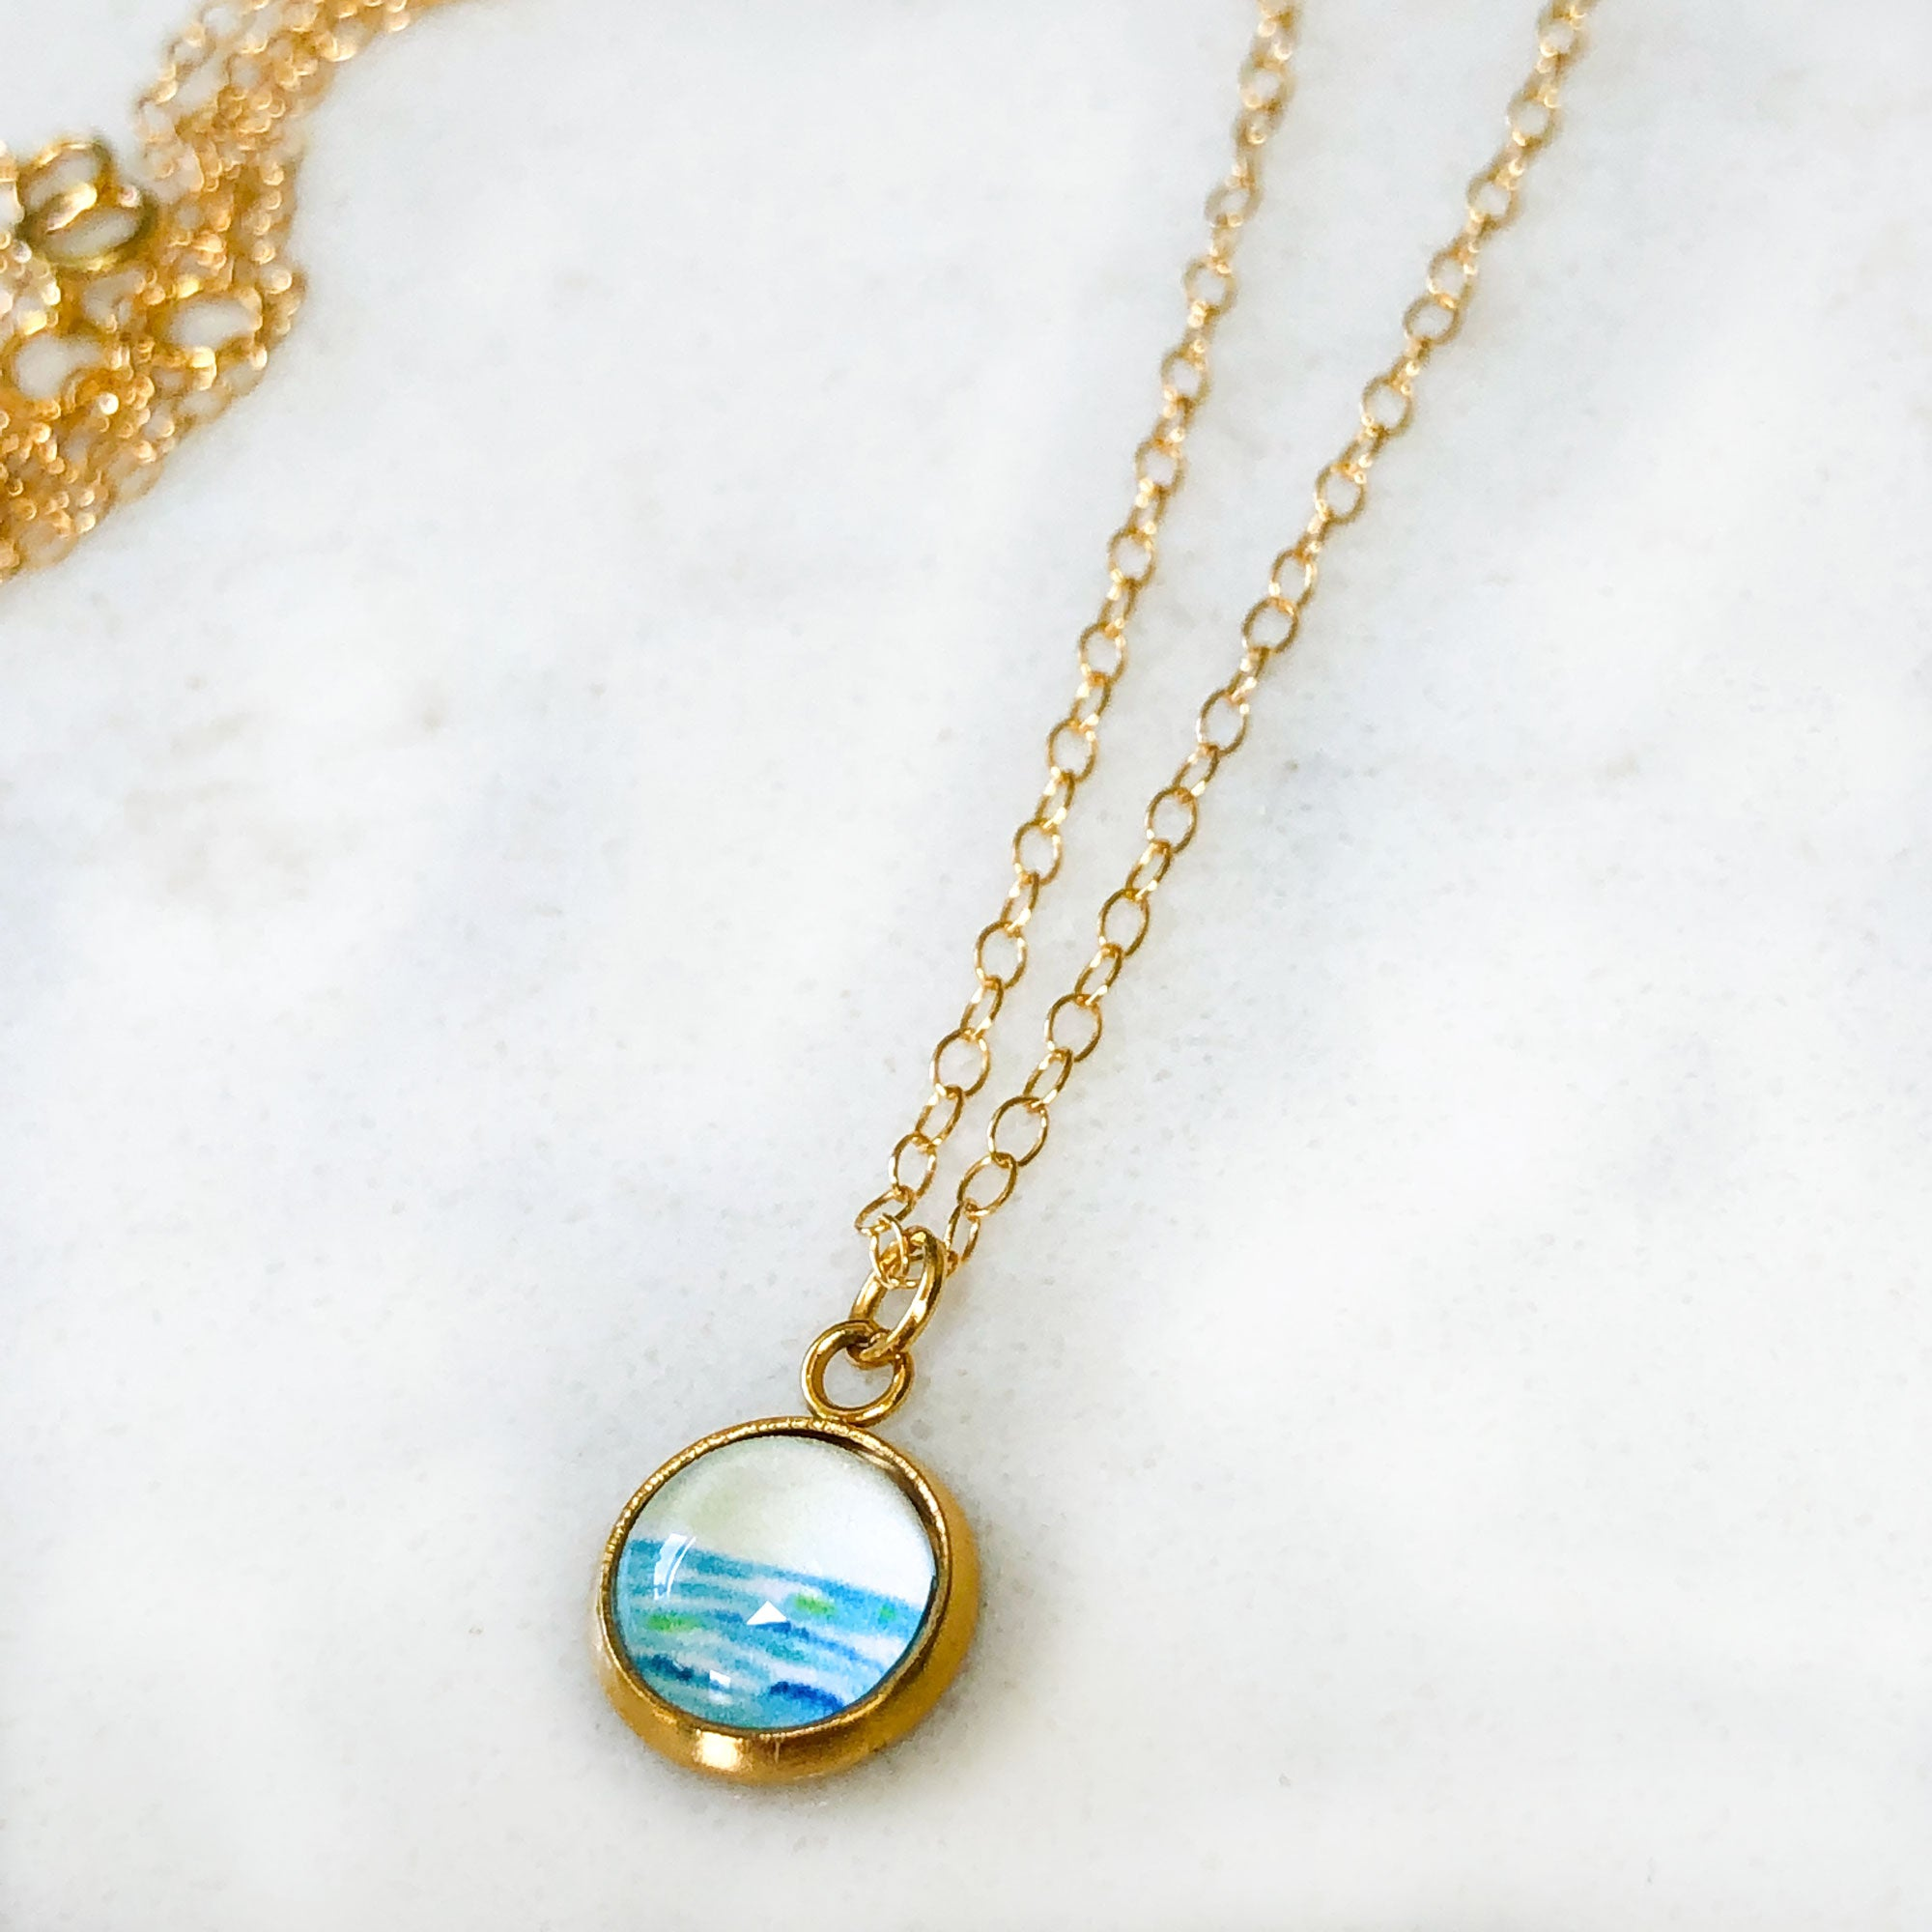 Dainty Necklace - Lovely Beach Day